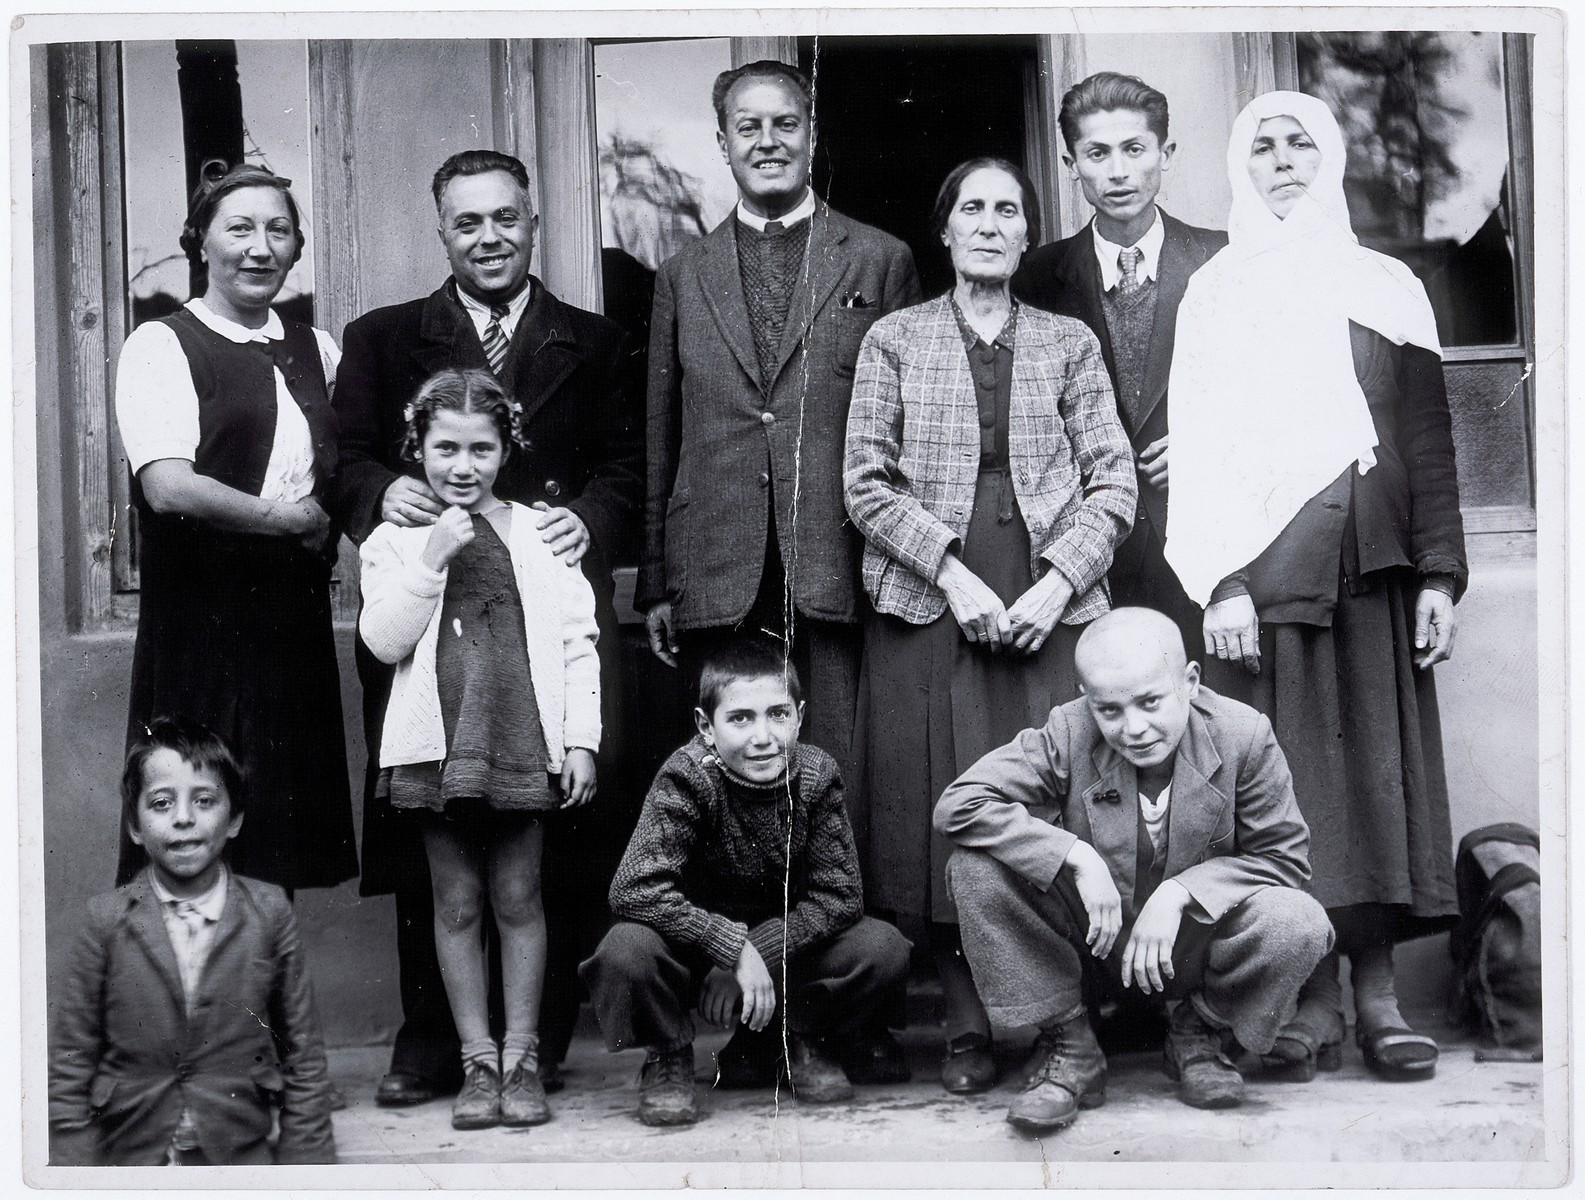 Group portrait of members of the Franses family, a Jewish refugee family from Skopje, Macedonia, with the Albanian family (the Kasapis) that sheltered them in Tirana, Albania.  Pictured in the top row from left to right are: Vinka Franses, Mr. Batino (a wealthy Albanian Jew from Tirana), Mois Franses, Ester Franses, Hamdi Kasapi, Mrs. Kasapi.  The children in front of them are: a neighbor's child, Eni Franses, Marcel Franses, and Josip Kasapi.